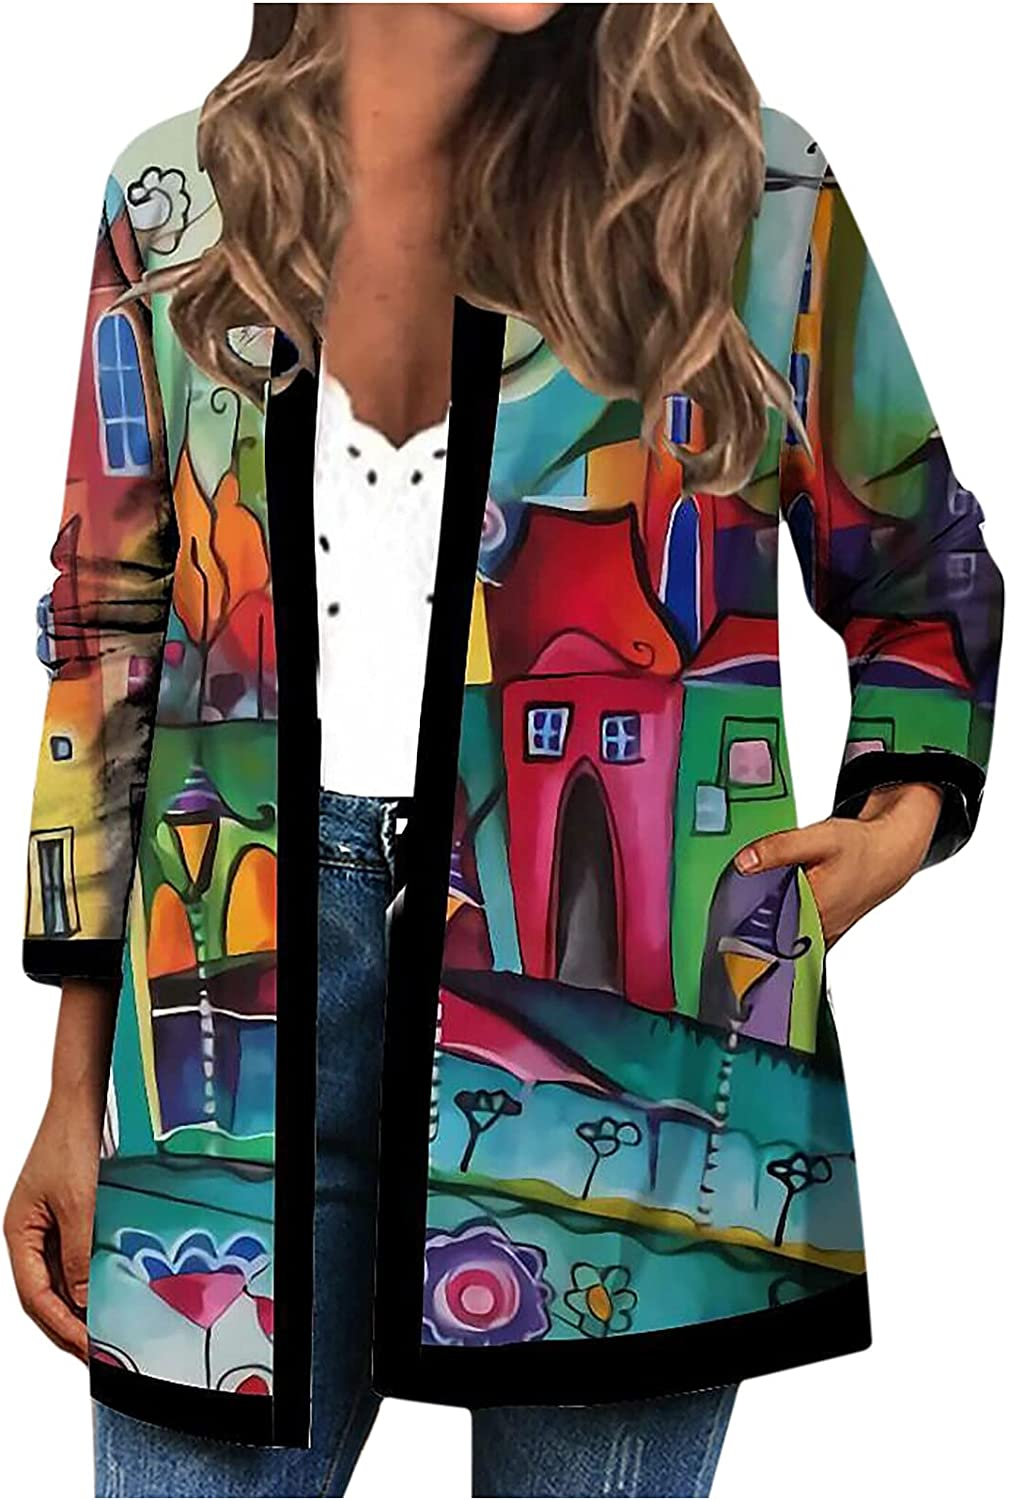 Women Pattern 5 ☆ popular Patchwork Cardigans None Collar Long Sleeve Courier shipping free shipping Cardi